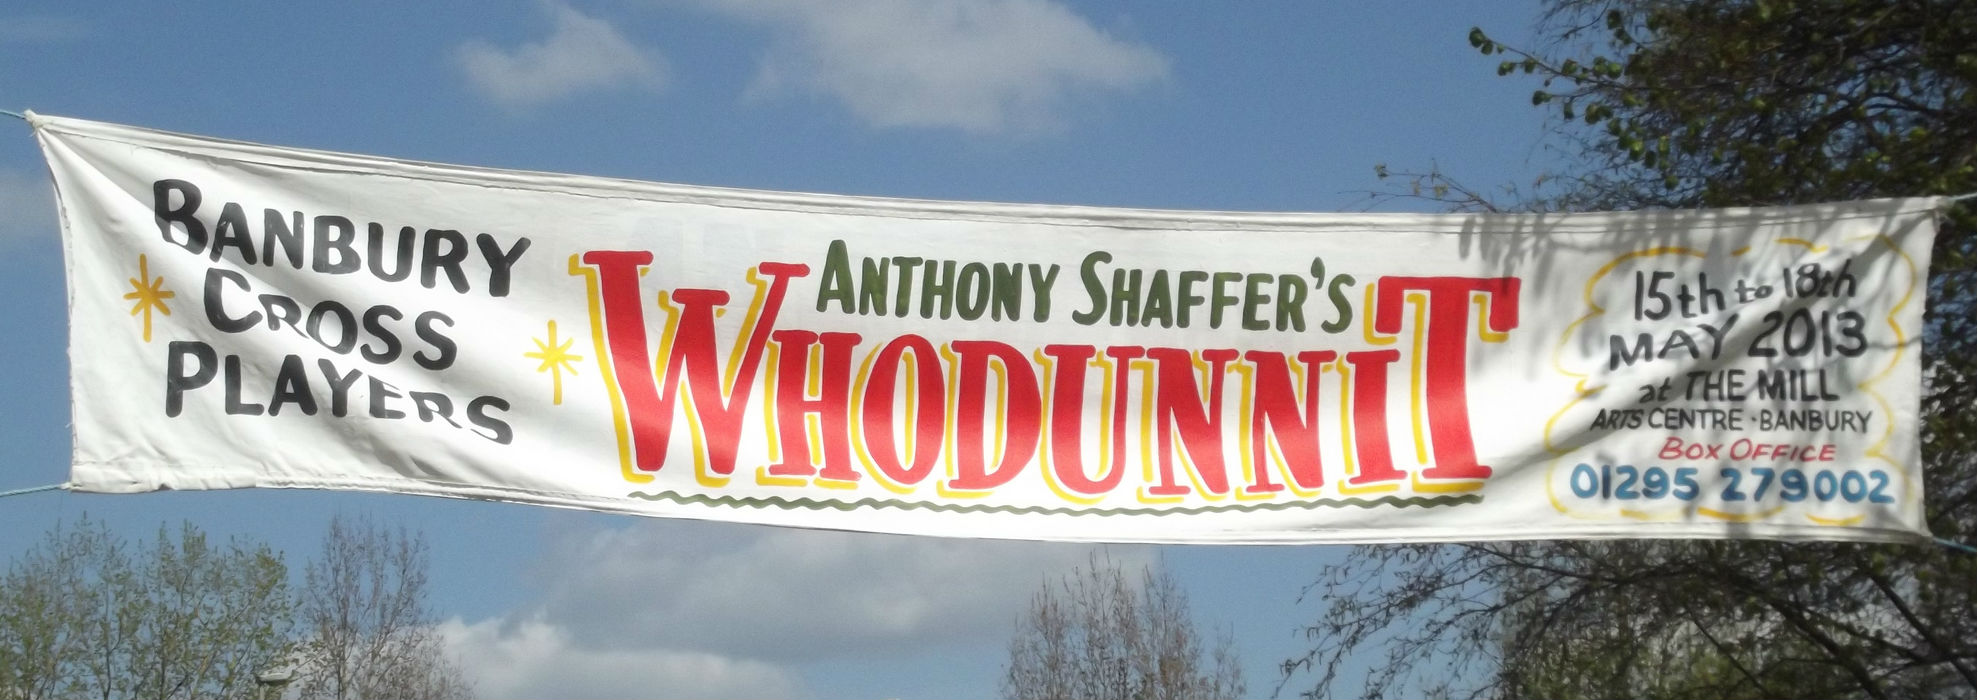 ¨Oxford Canal - Banbury - sign - Whodunnit¨ photo (trimmed) by Elliott Brown, CC by 2.0